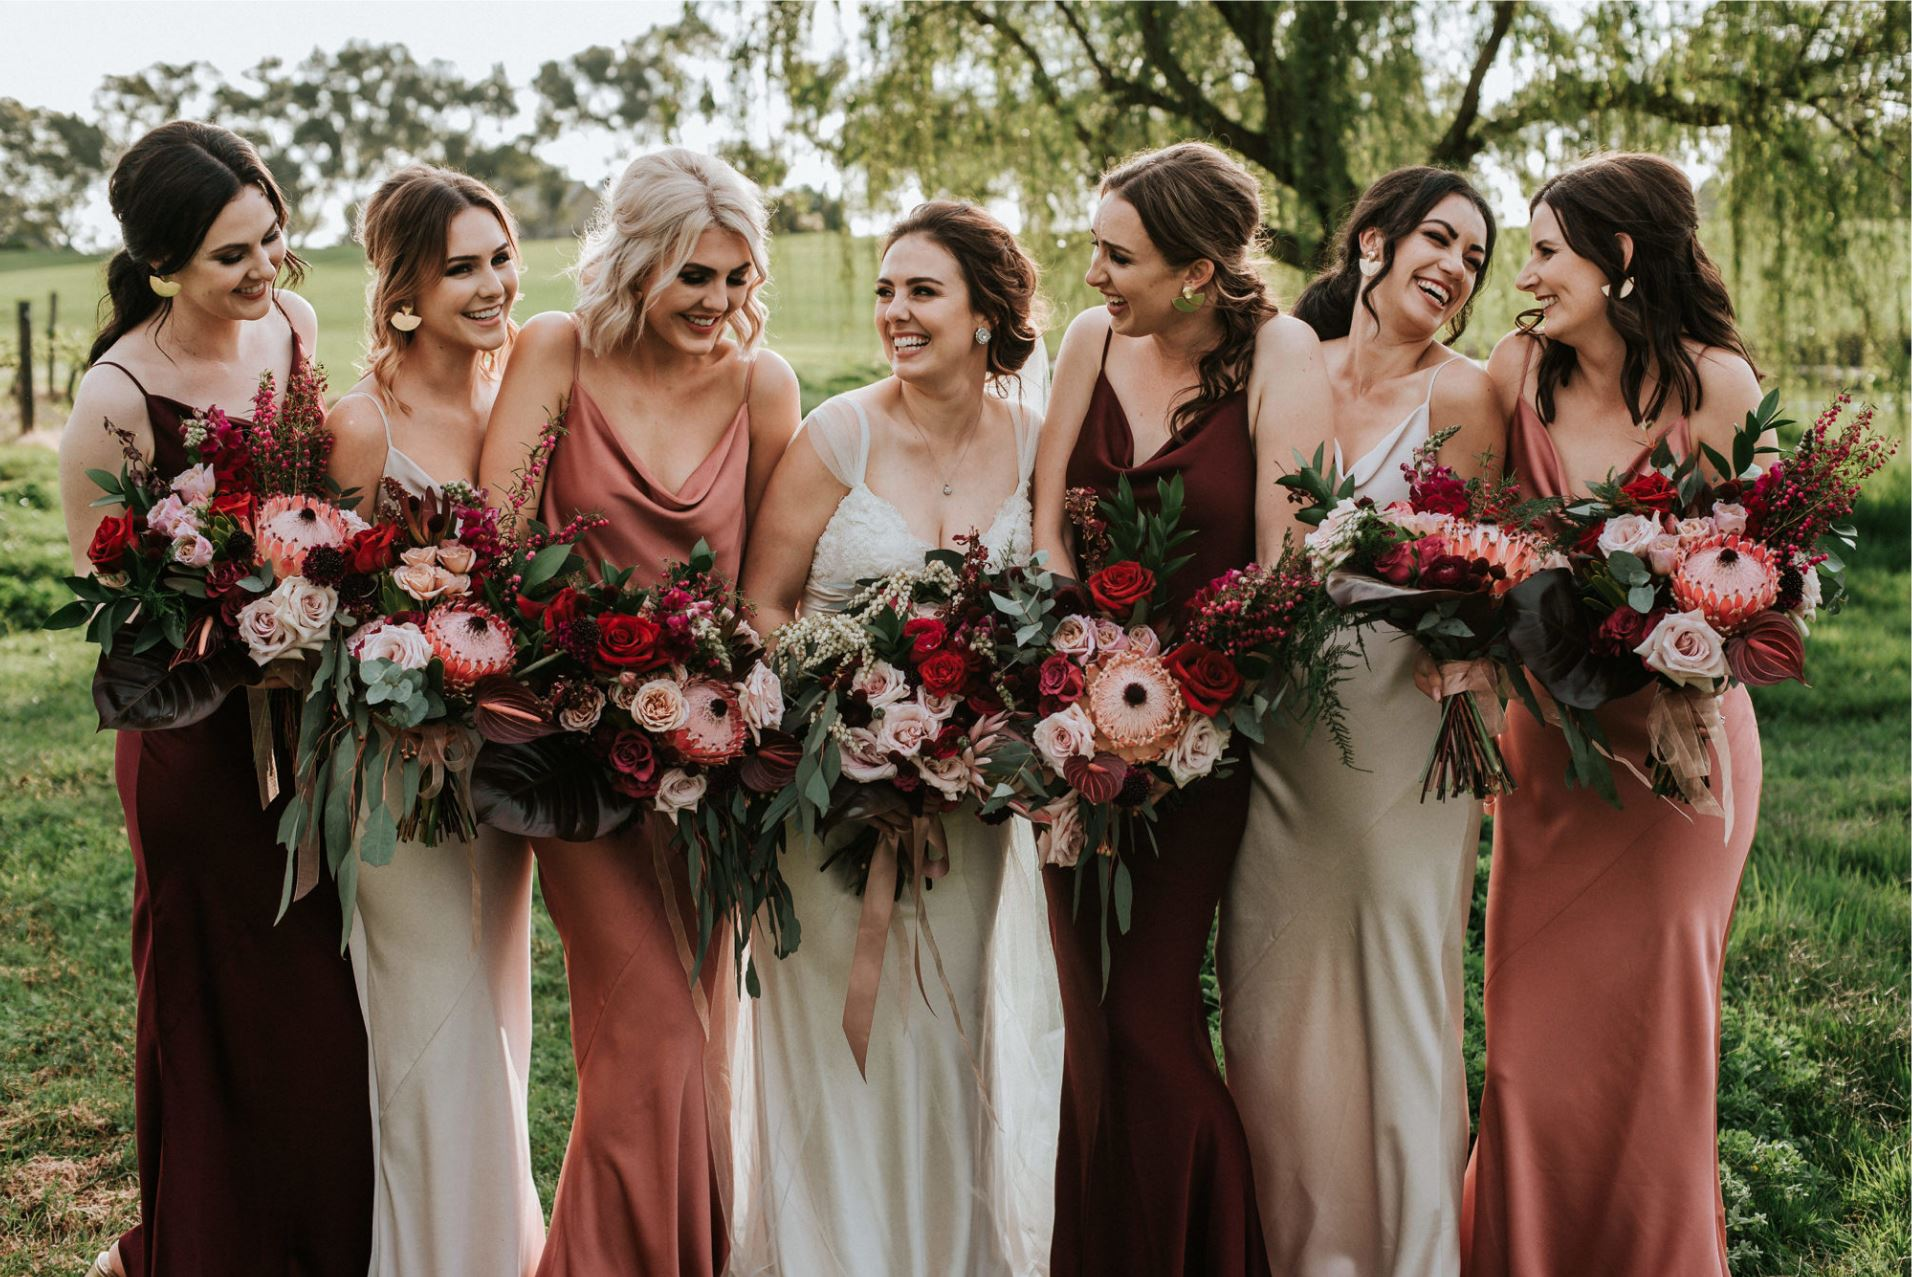 Perth Bridal Expo Competition Gamine Dynasty